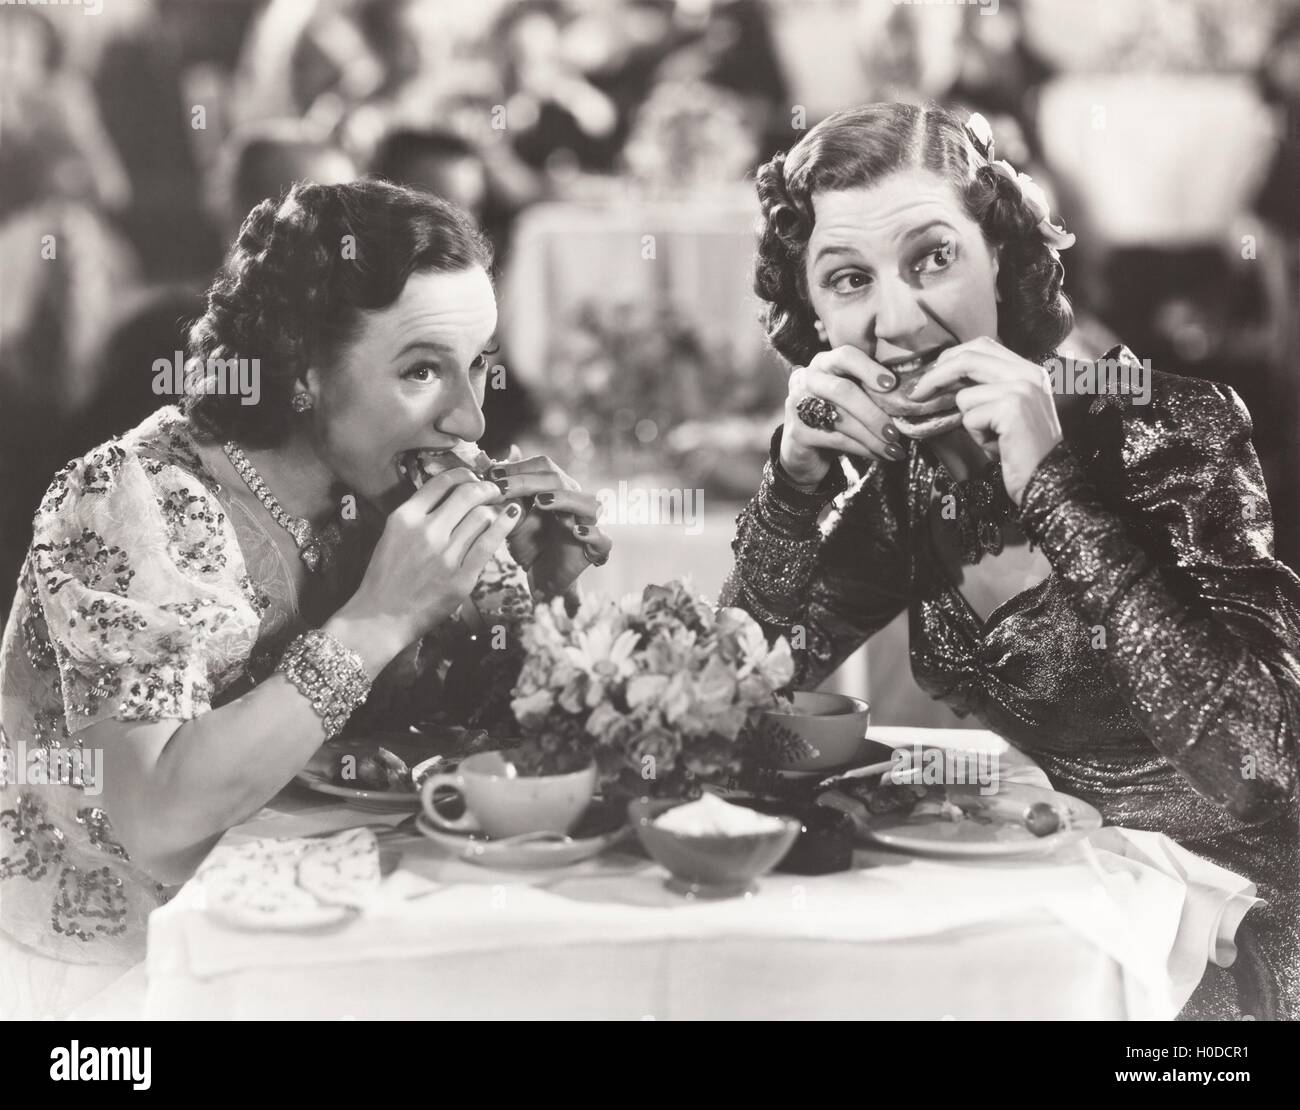 Two women distracted from their meal - Stock Image